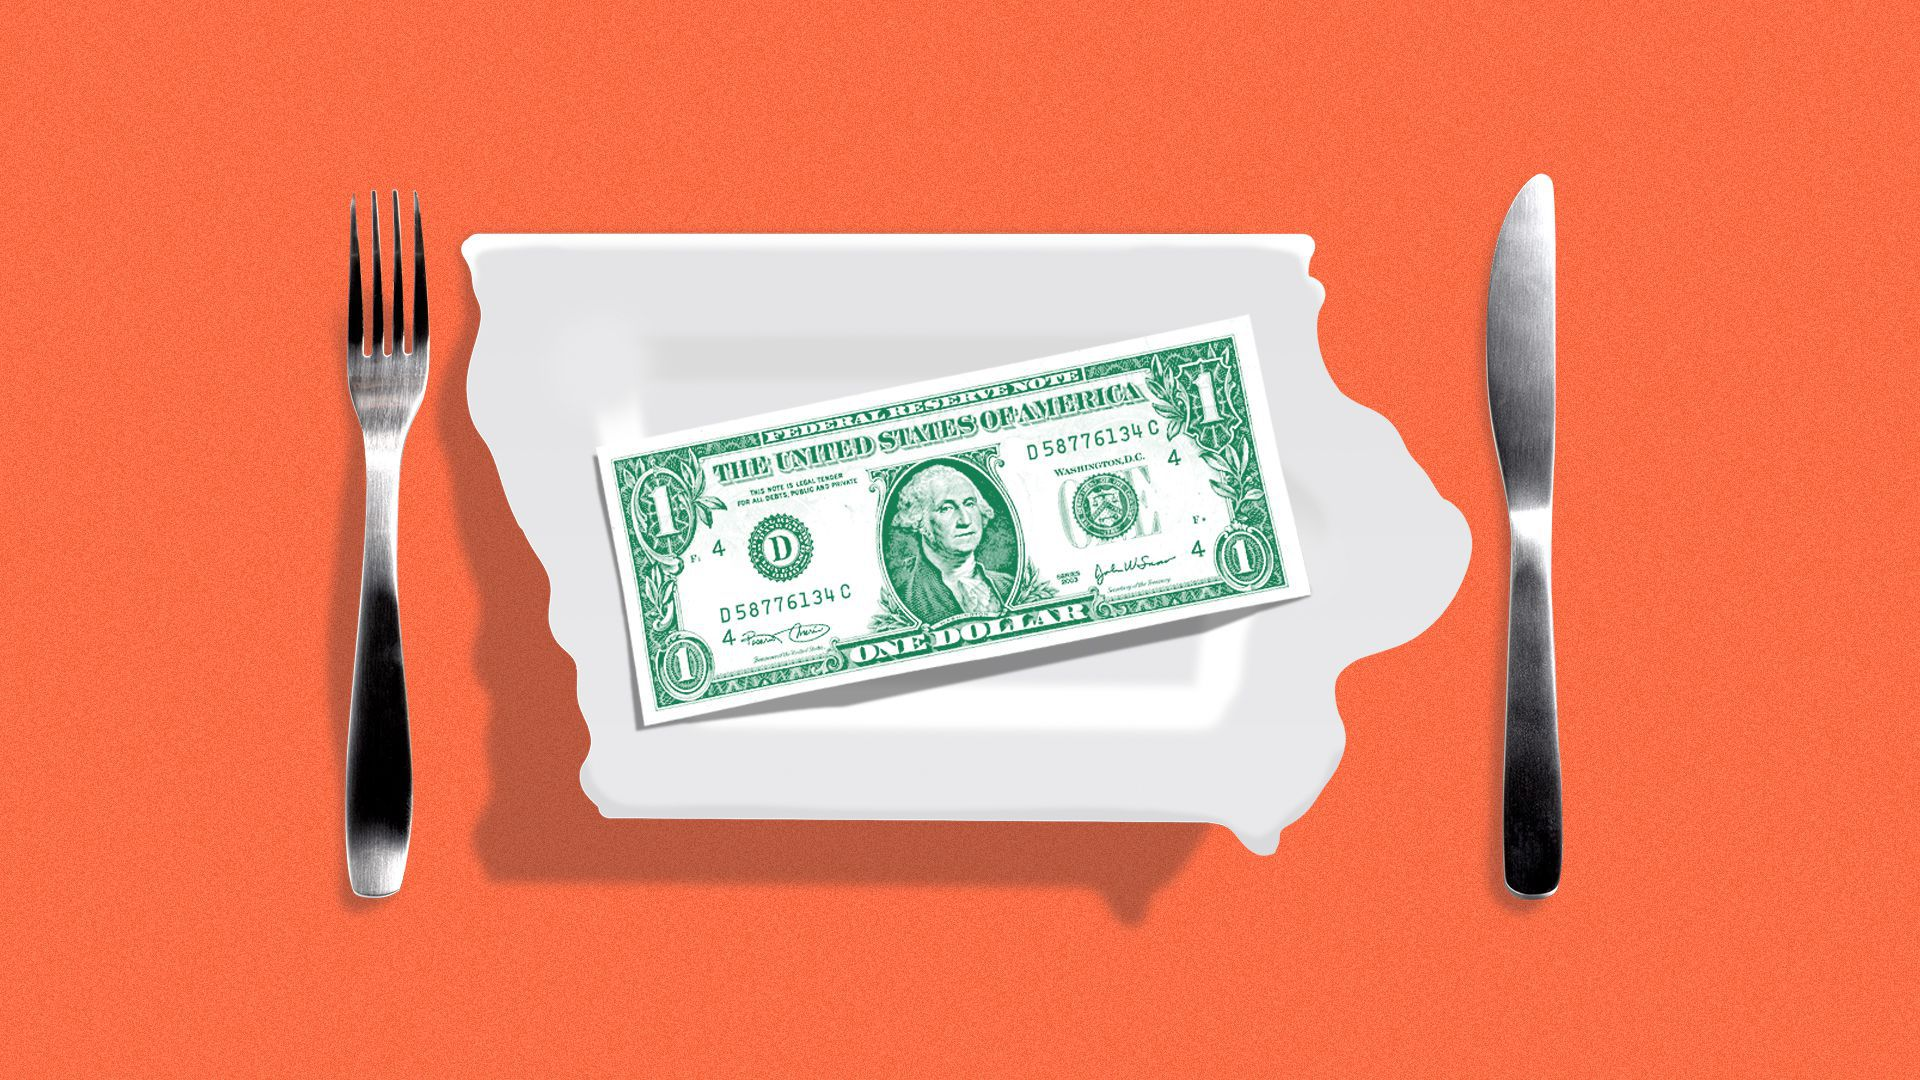 Illustration of a dollar sitting on a plate shaped like the state of Iowa.